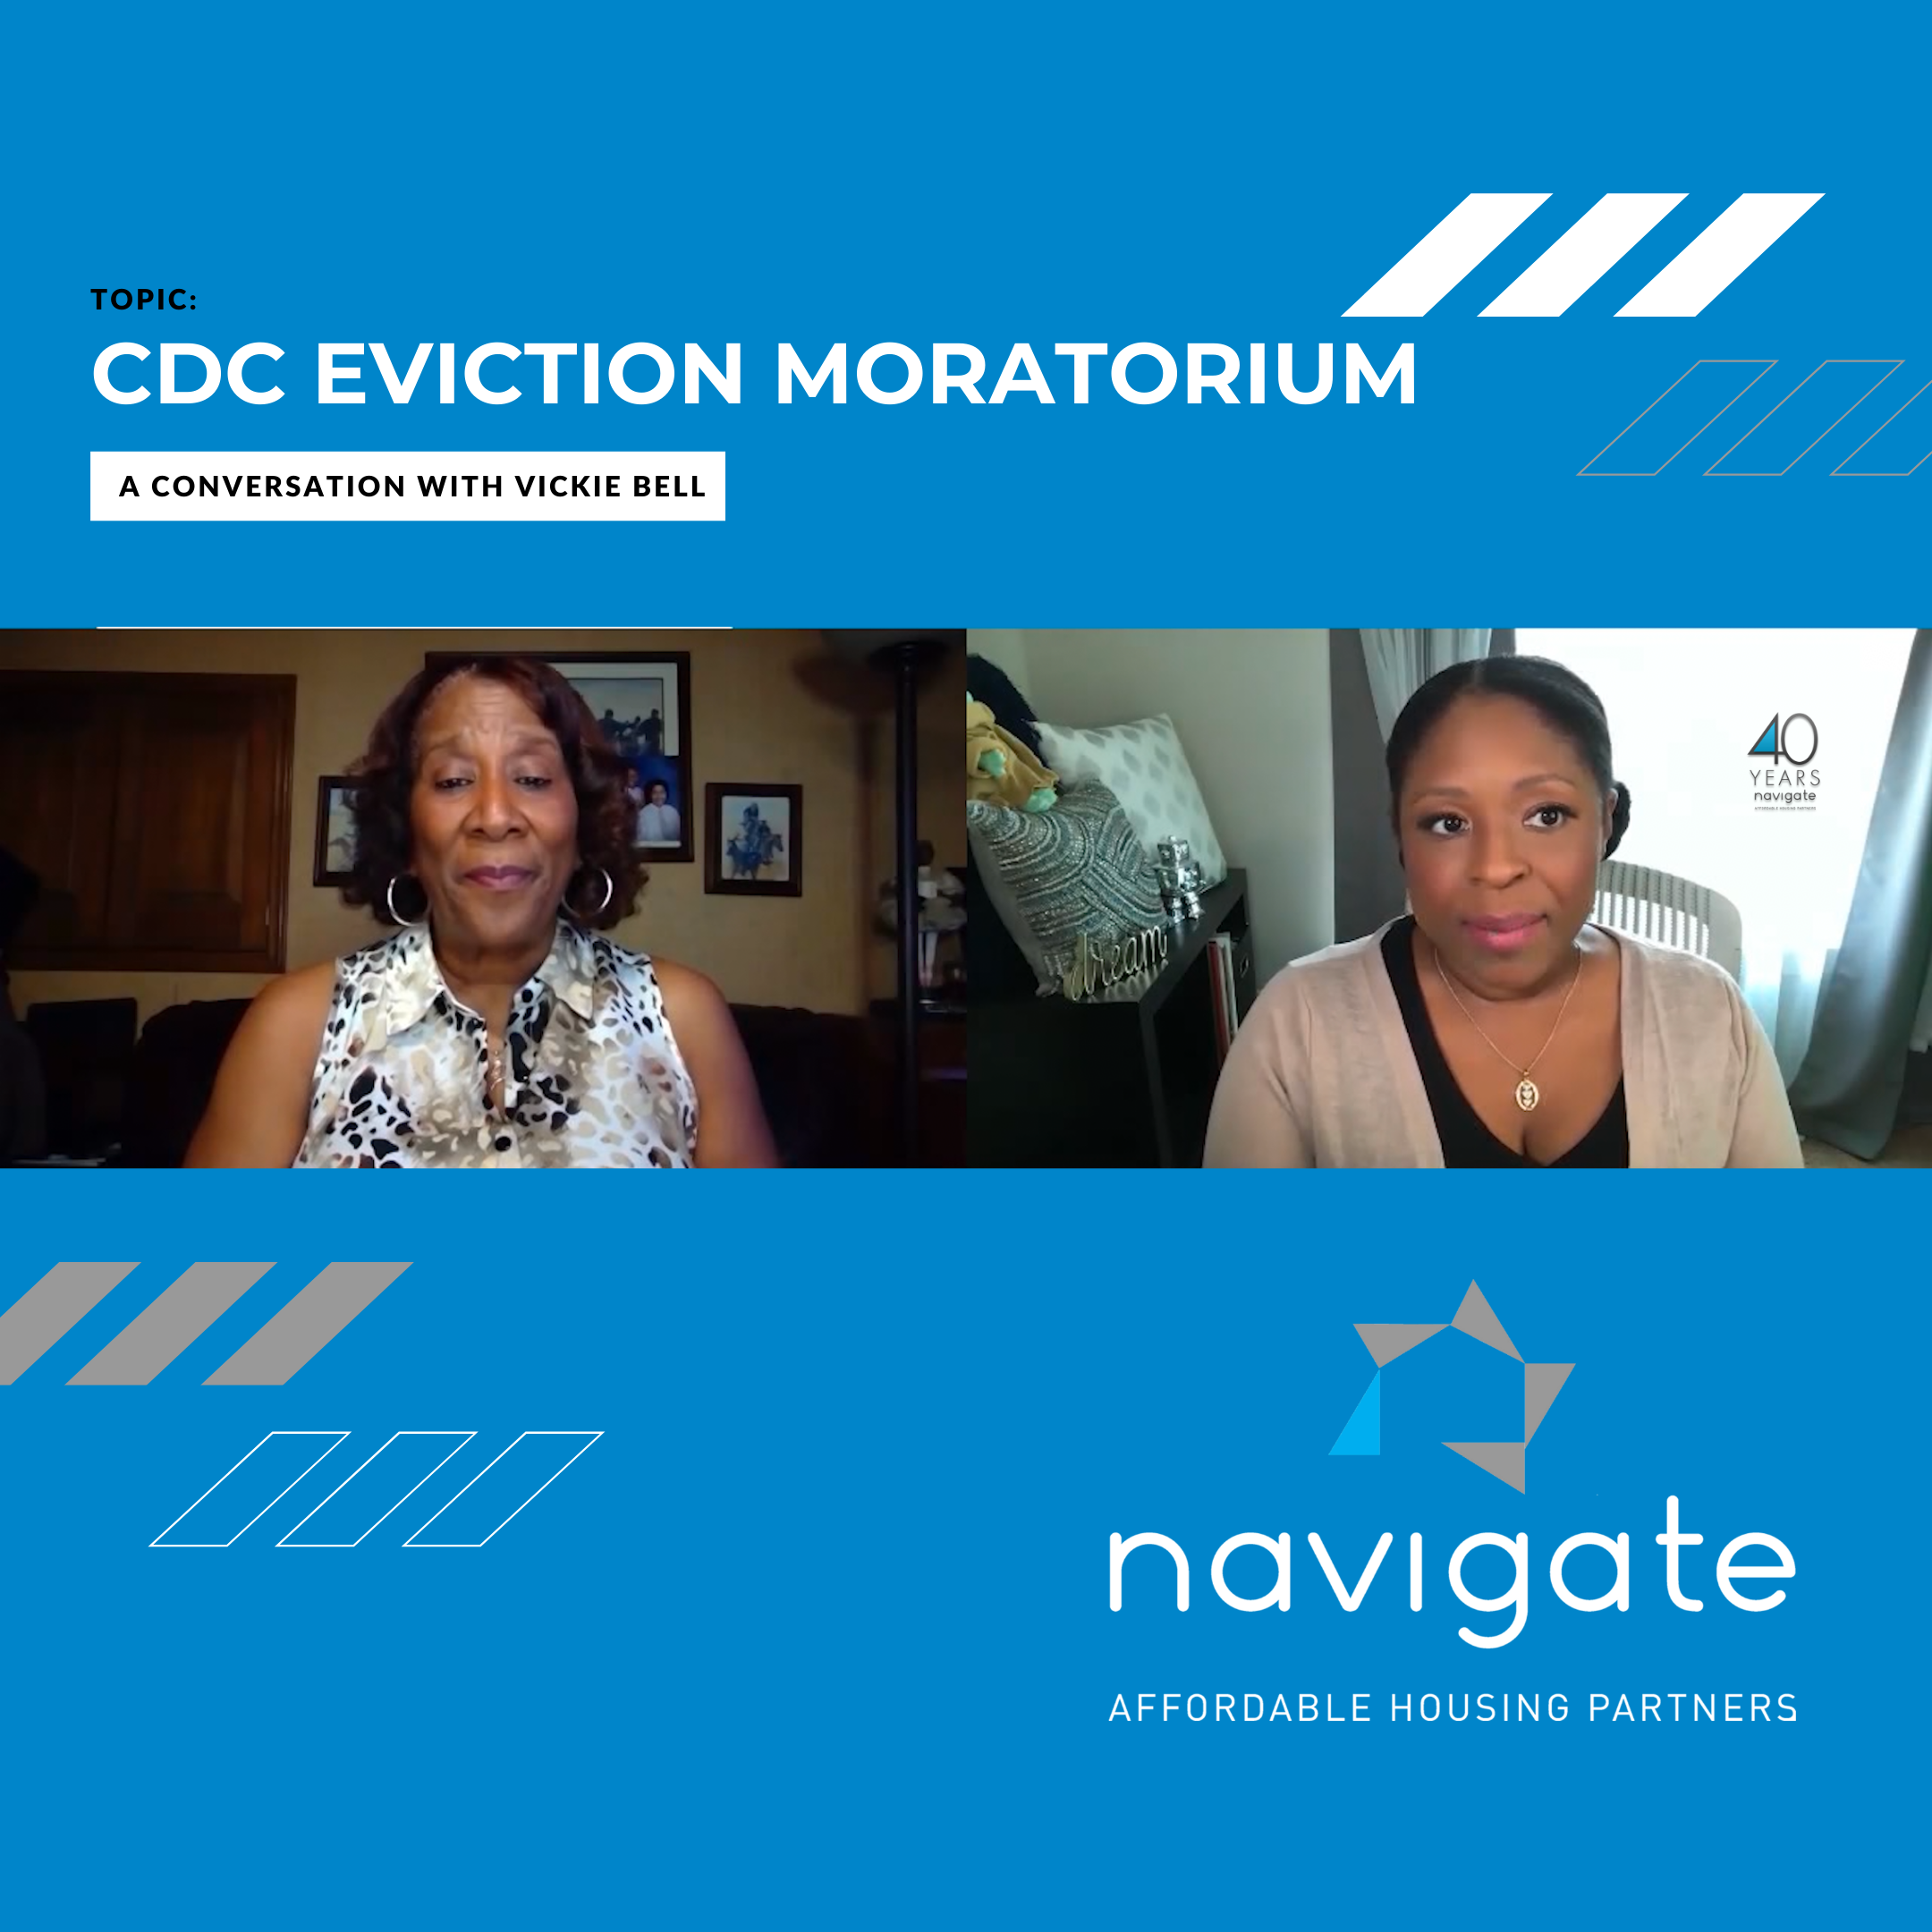 CDC National Eviction Moratorium